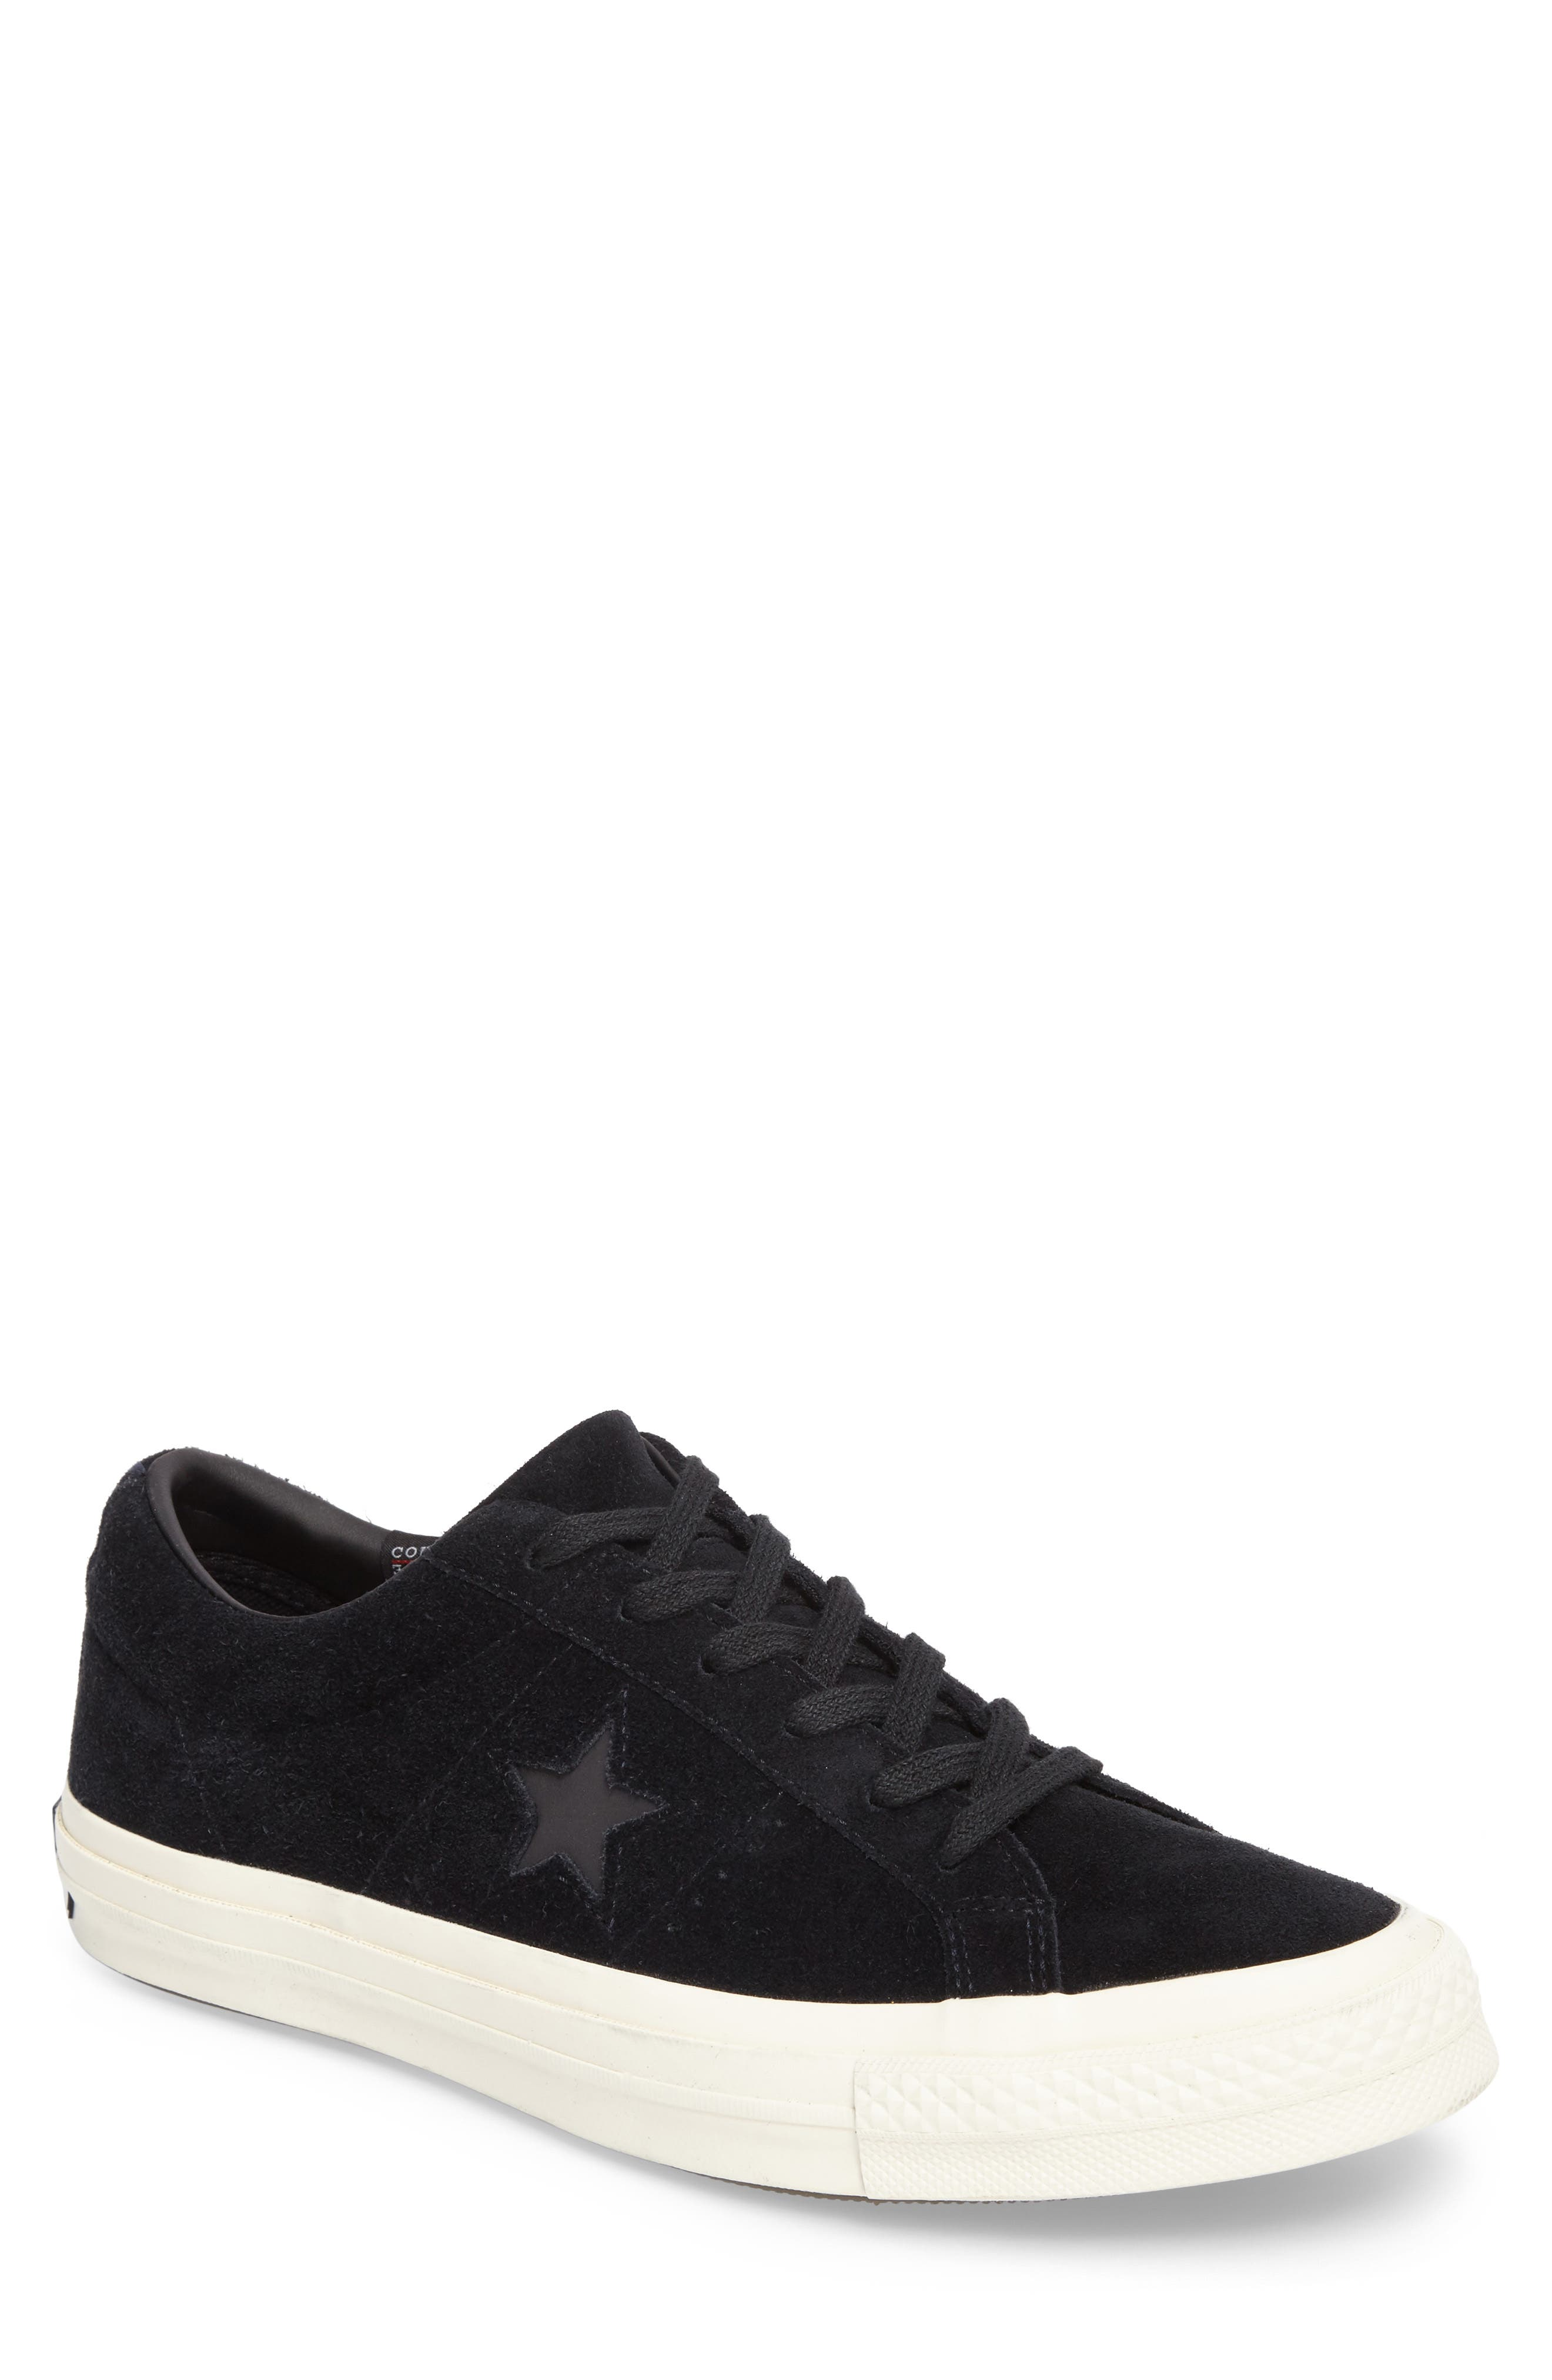 One Star Sneaker,                         Main,                         color,